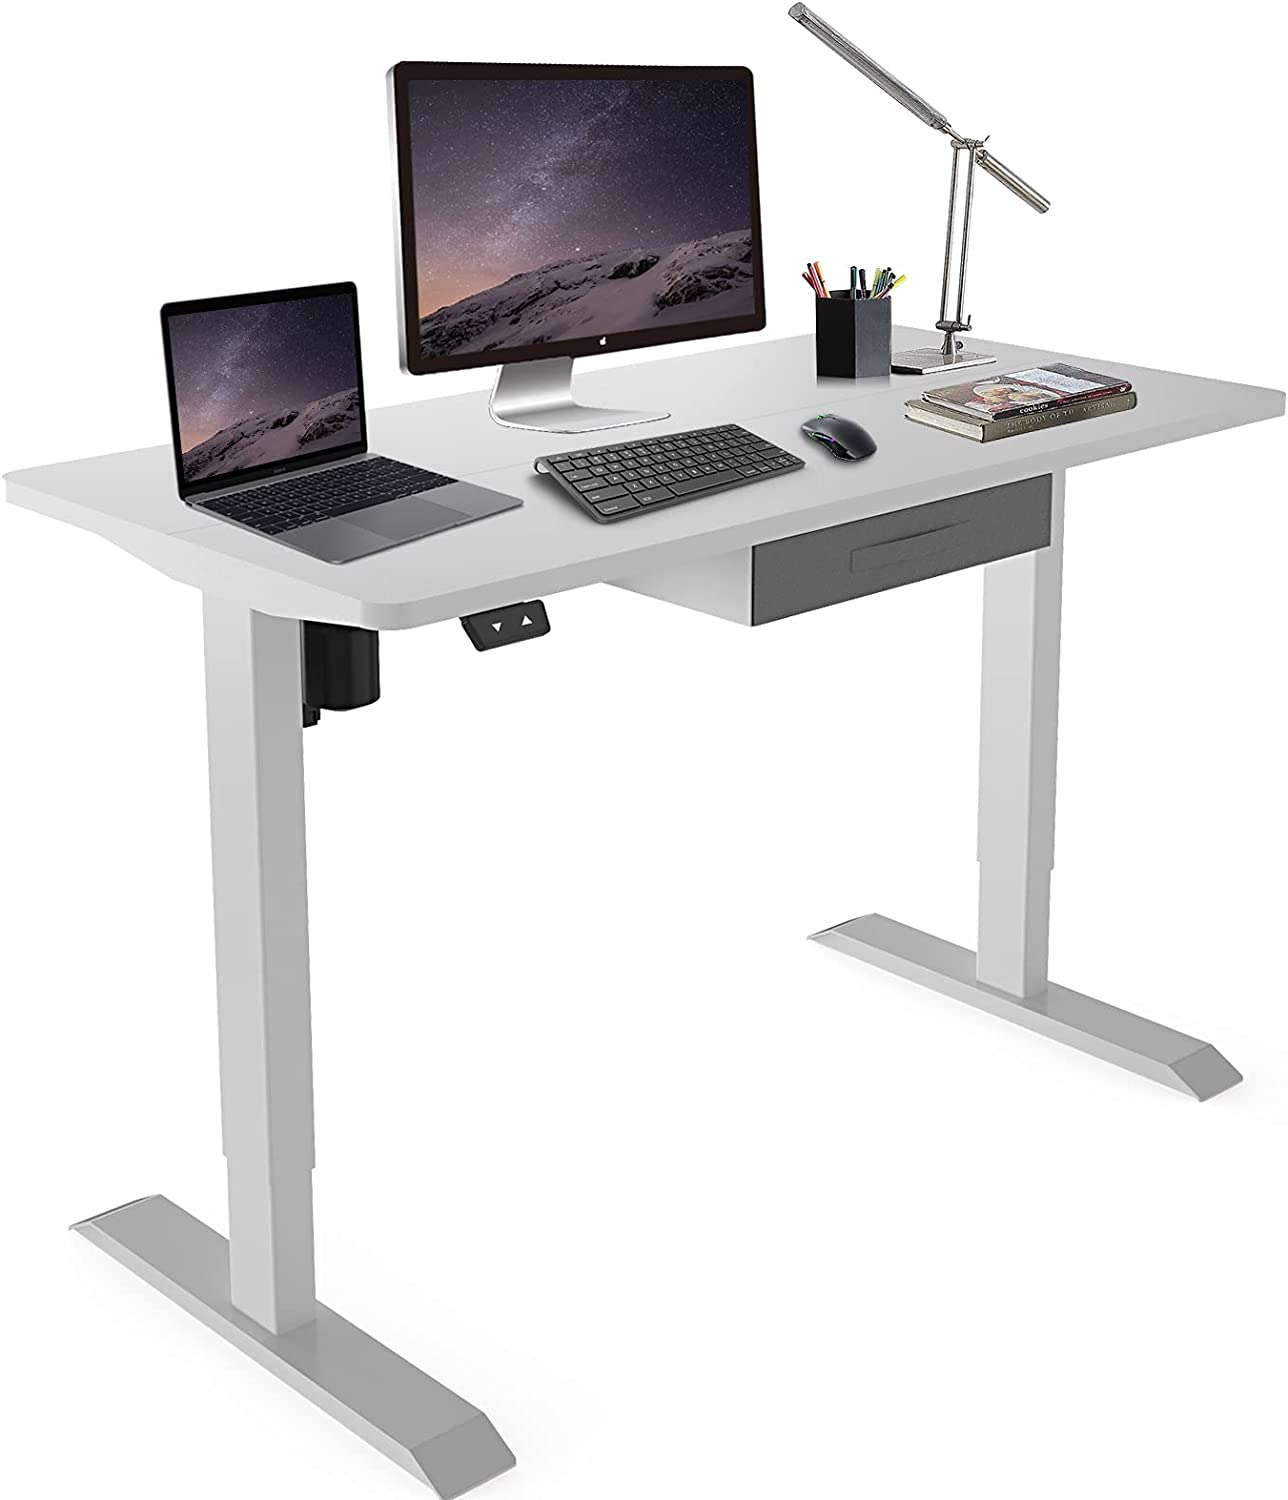 Height Adjustable Electric Standing Save money Brand new Desk 48 Inch x Up 24 Stand